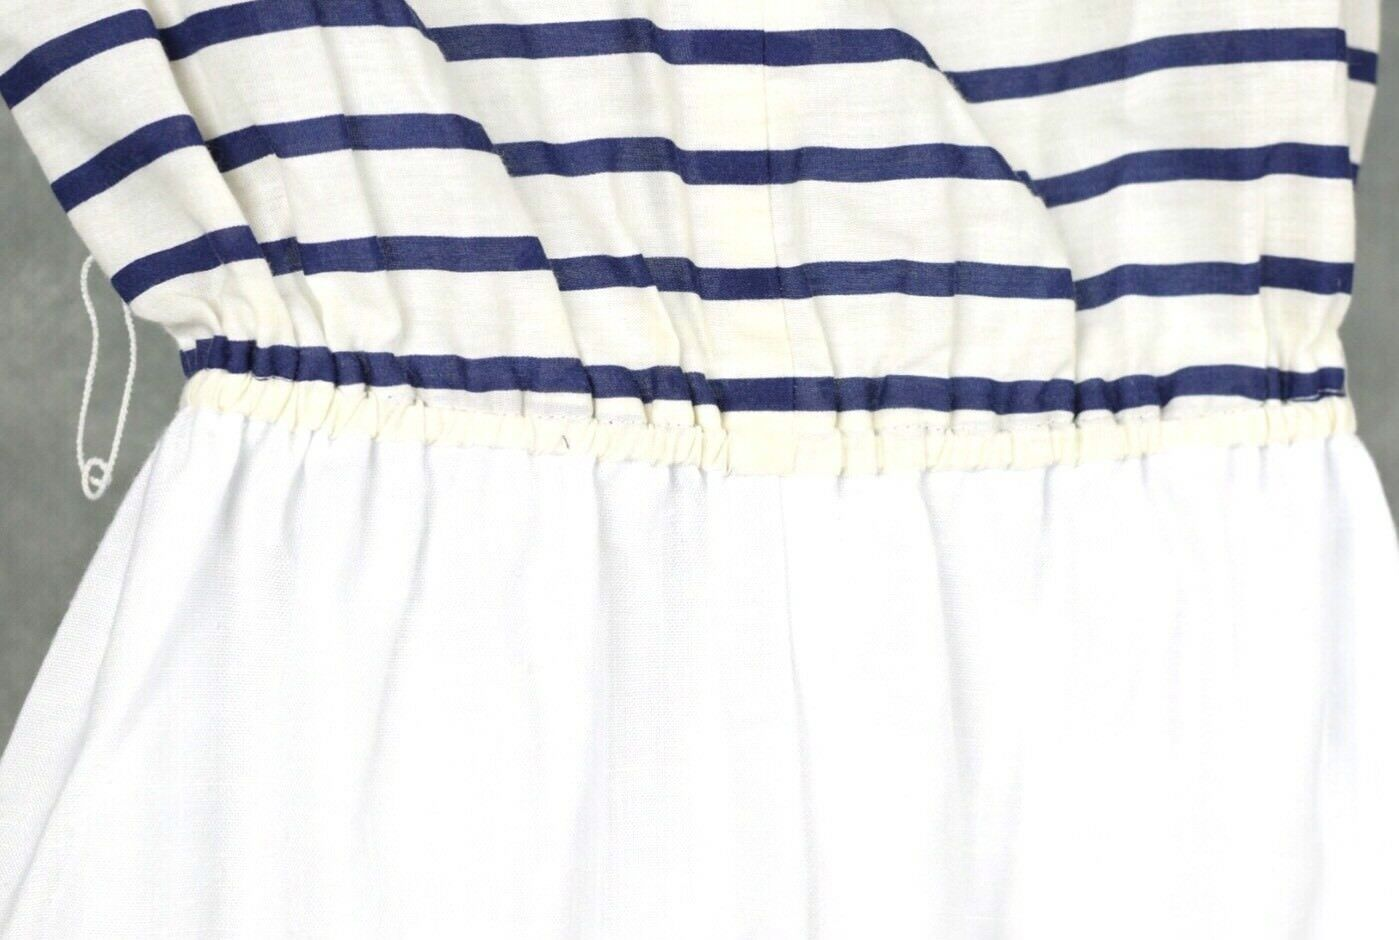 Vintage No Brand White And Blue Dress Lot Size 12 - image 10